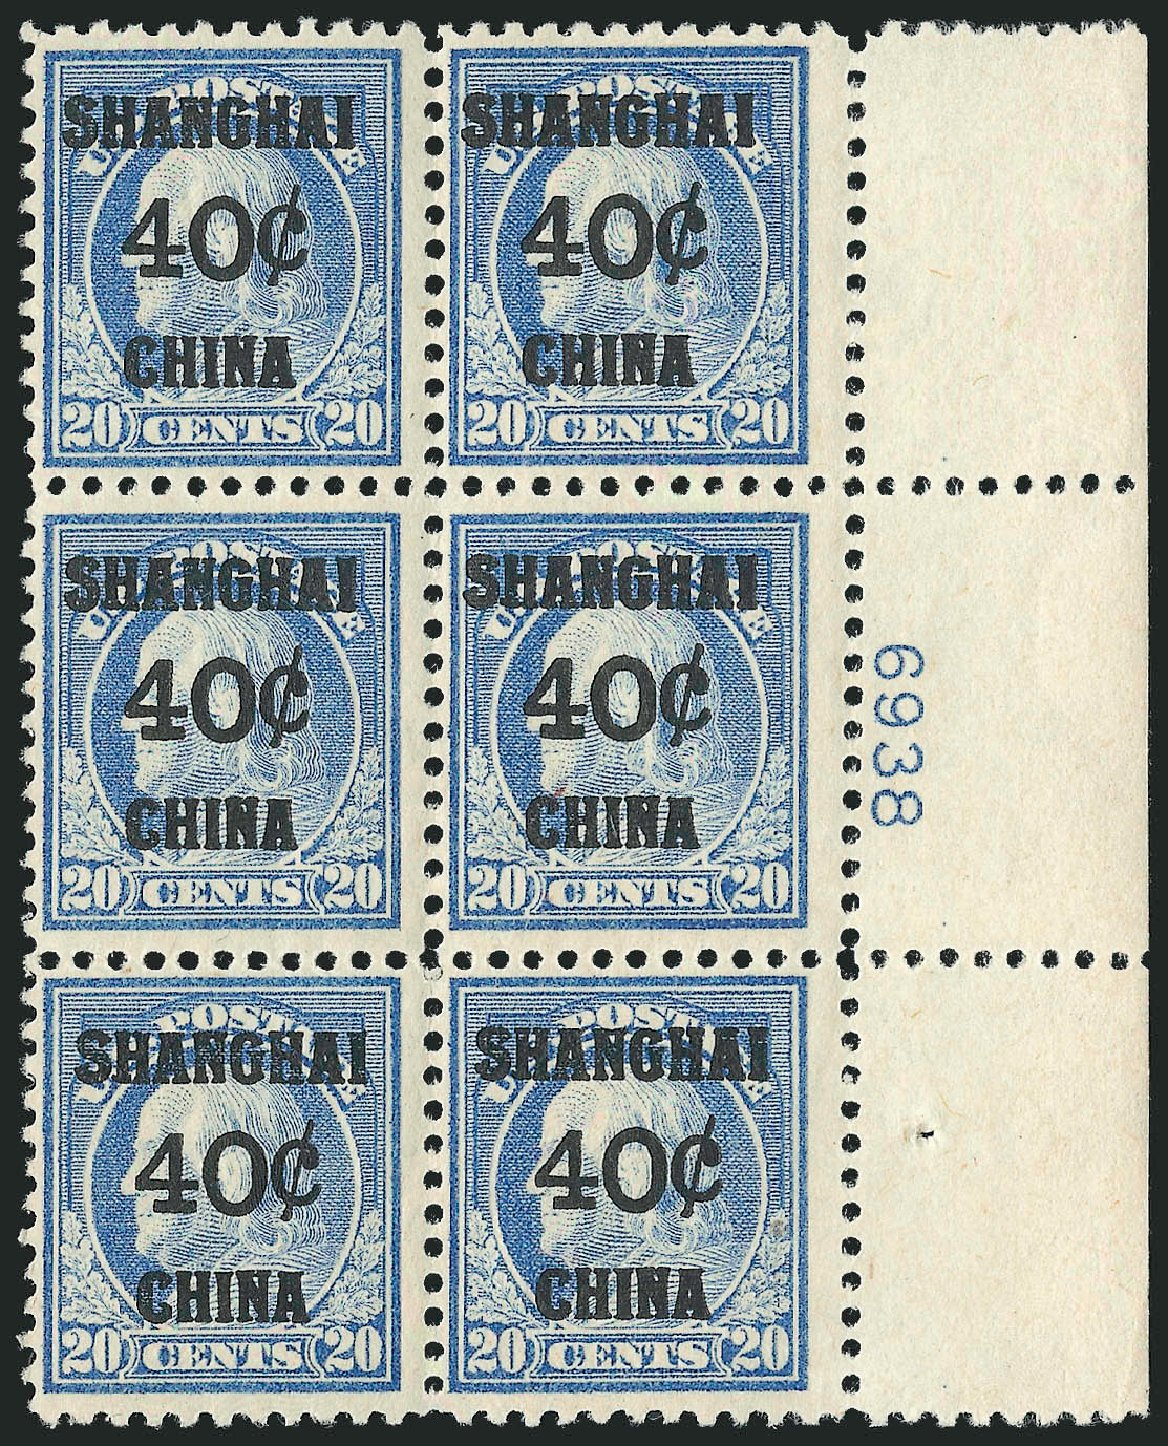 US Stamp Price Scott Cat. # K13 - 1919 40c China Shanghai on 20c. Robert Siegel Auction Galleries, Mar 2015, Sale 1094, Lot 133